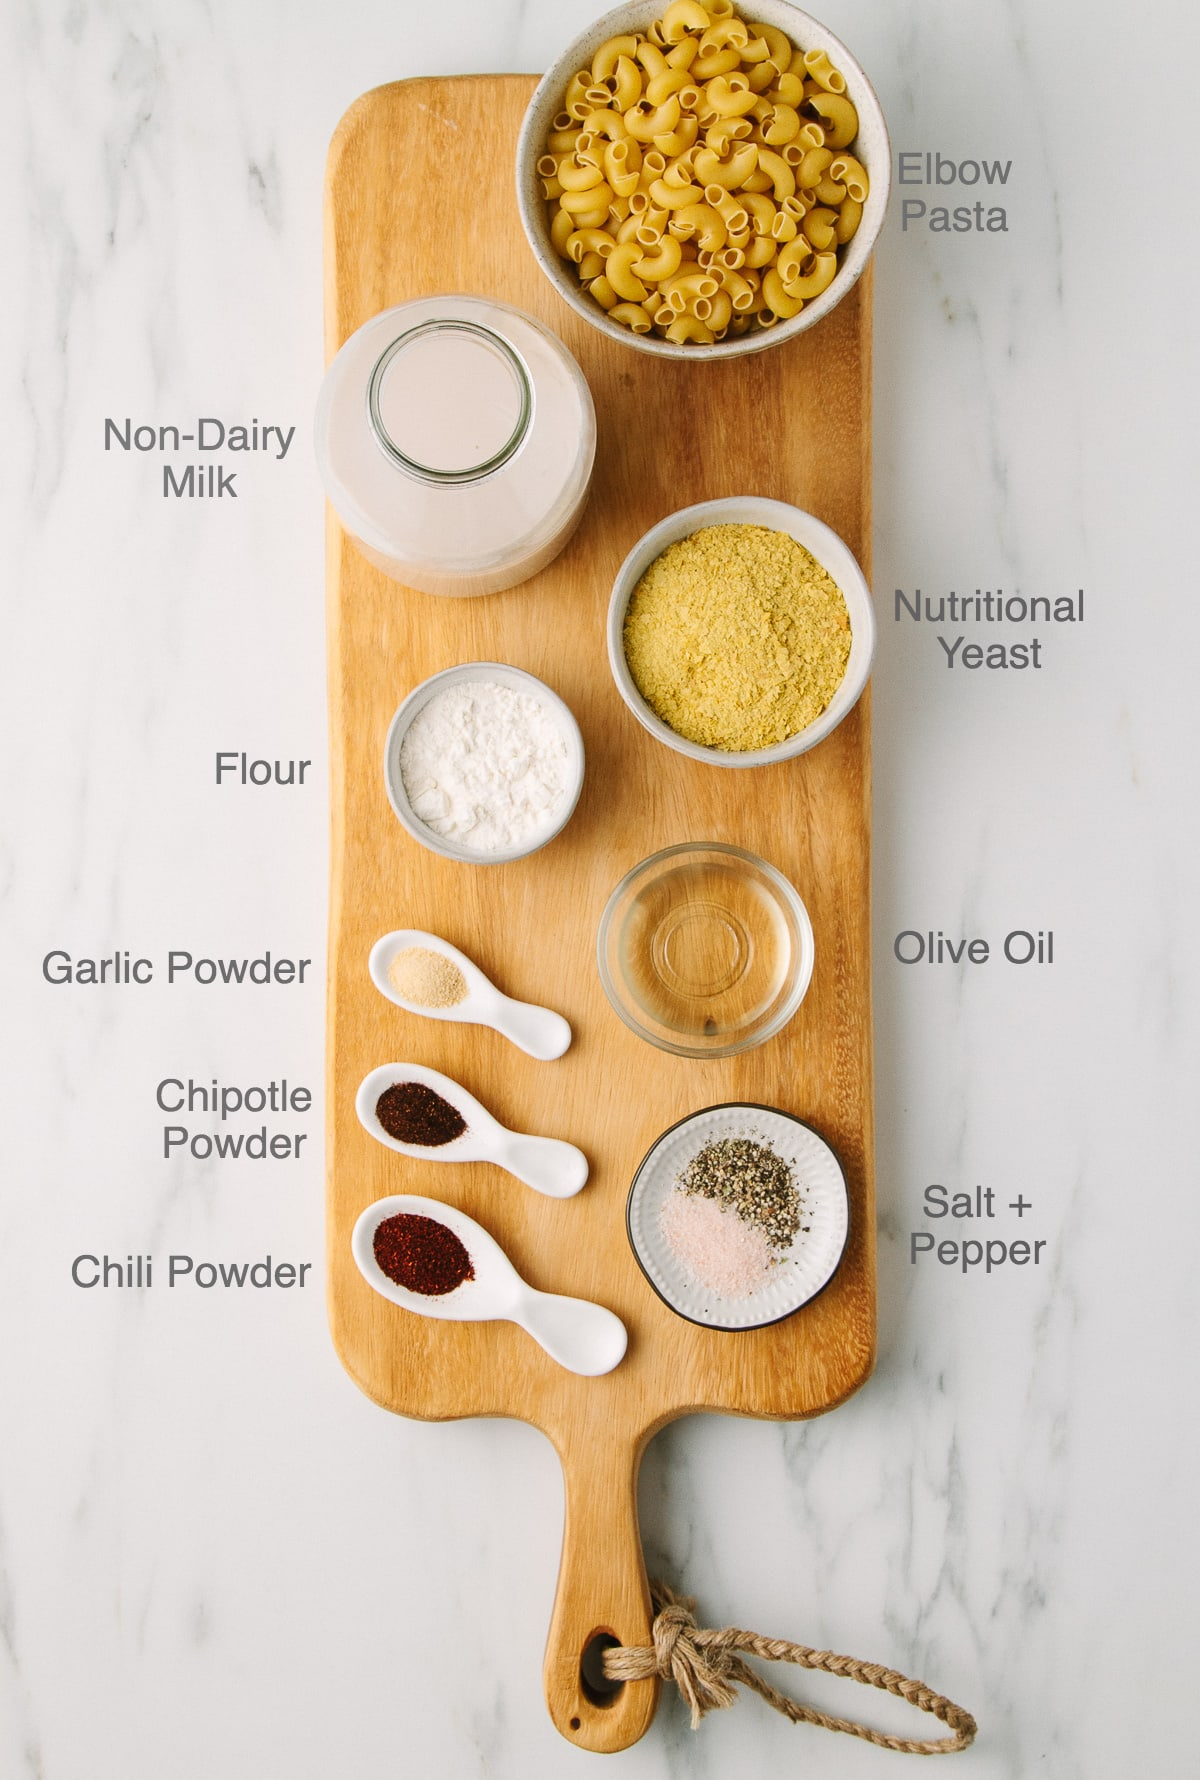 top down view of ingredients used to make vegan spicy mac and cheese recipe with nutritional yeast, flour and oil.